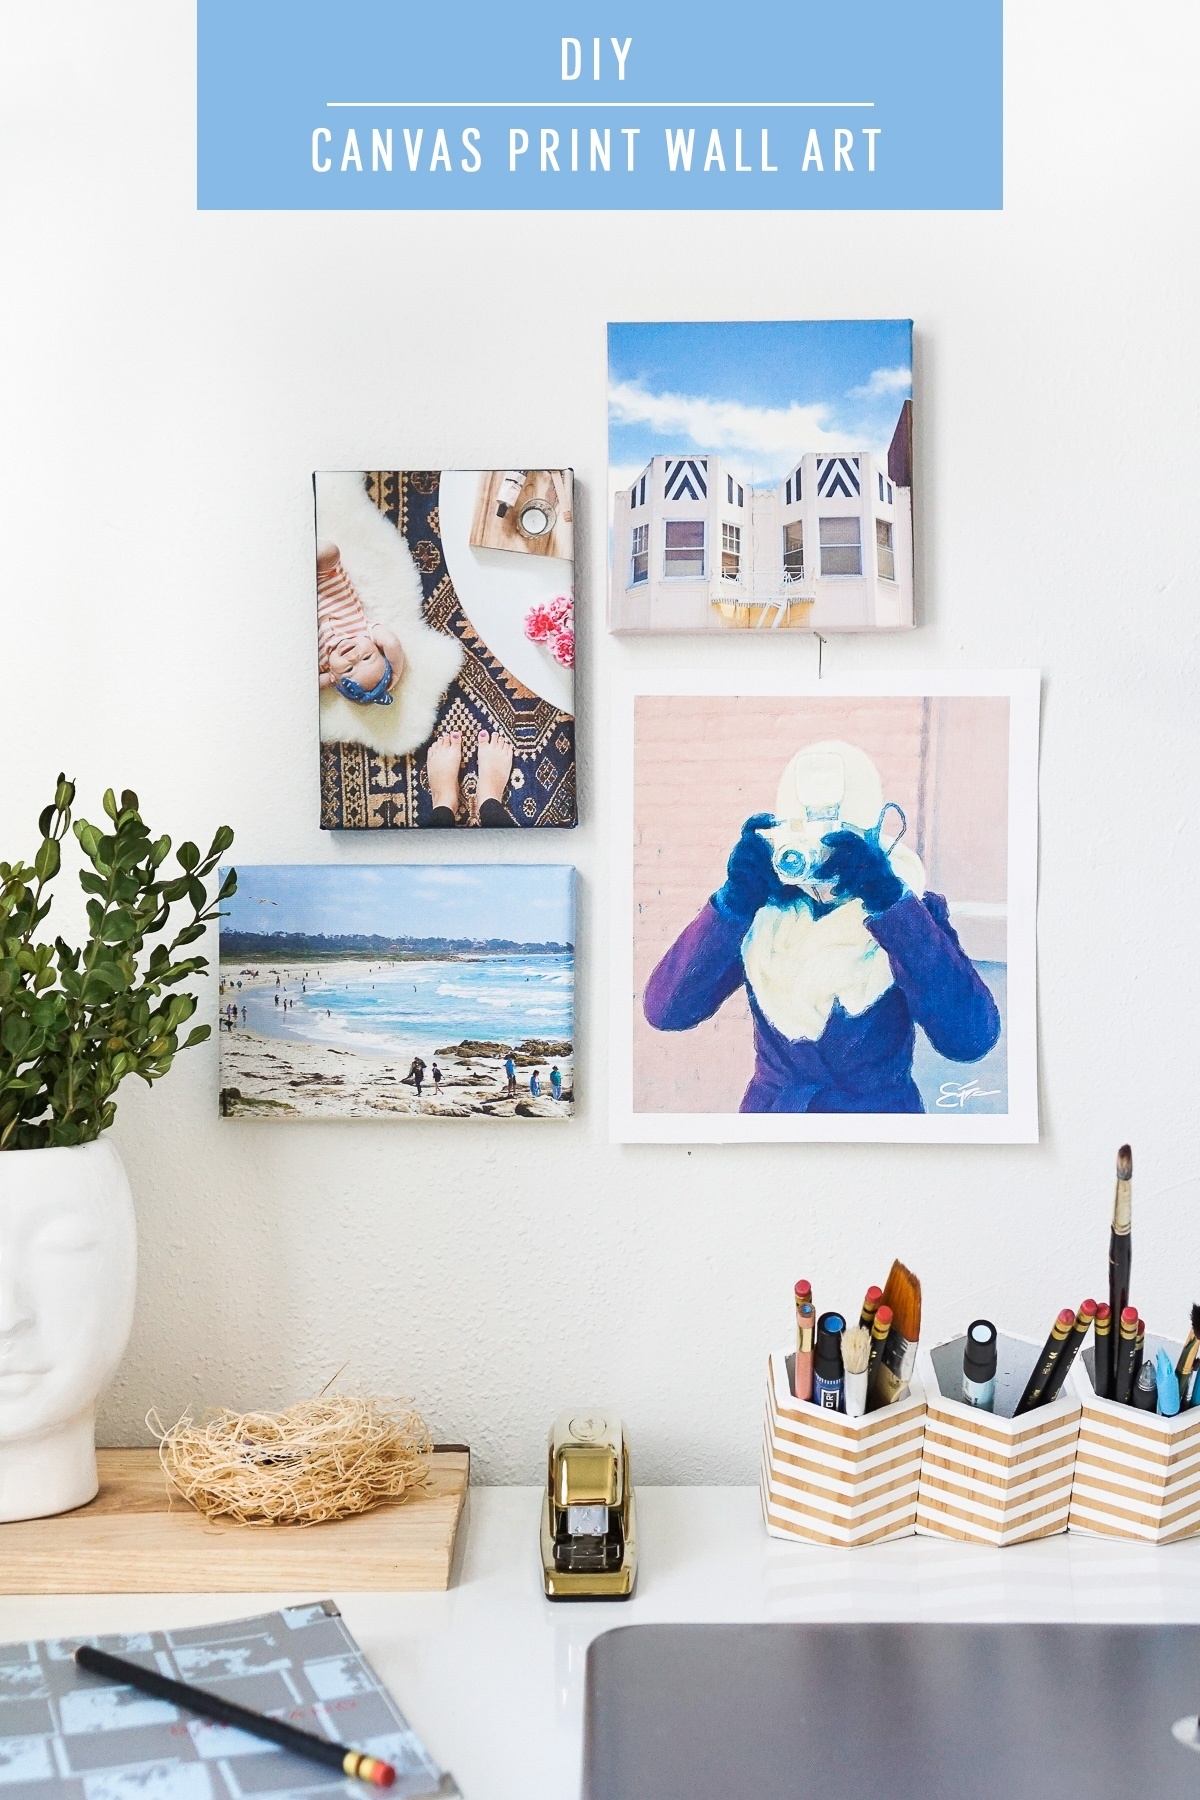 Diy Canvas Print Wall Art | Sugar & Cloth Intended For Recent Diy Canvas Wall Art (View 4 of 15)